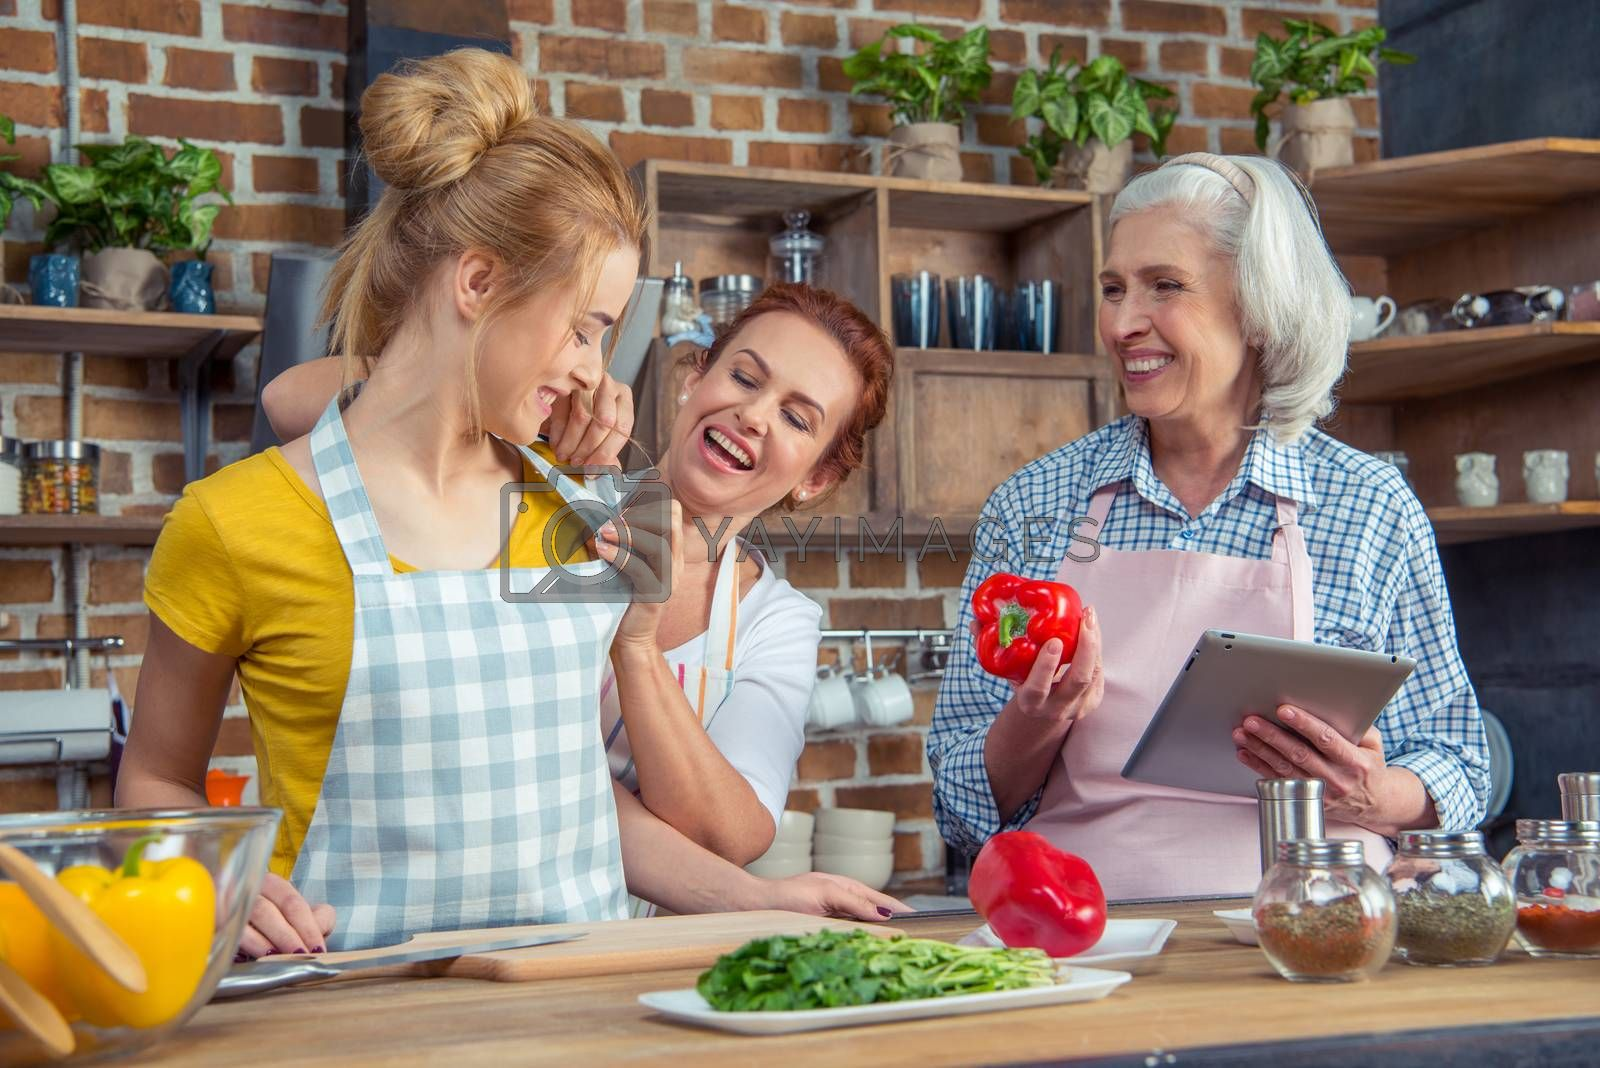 Smiling family cooking together in kitchen